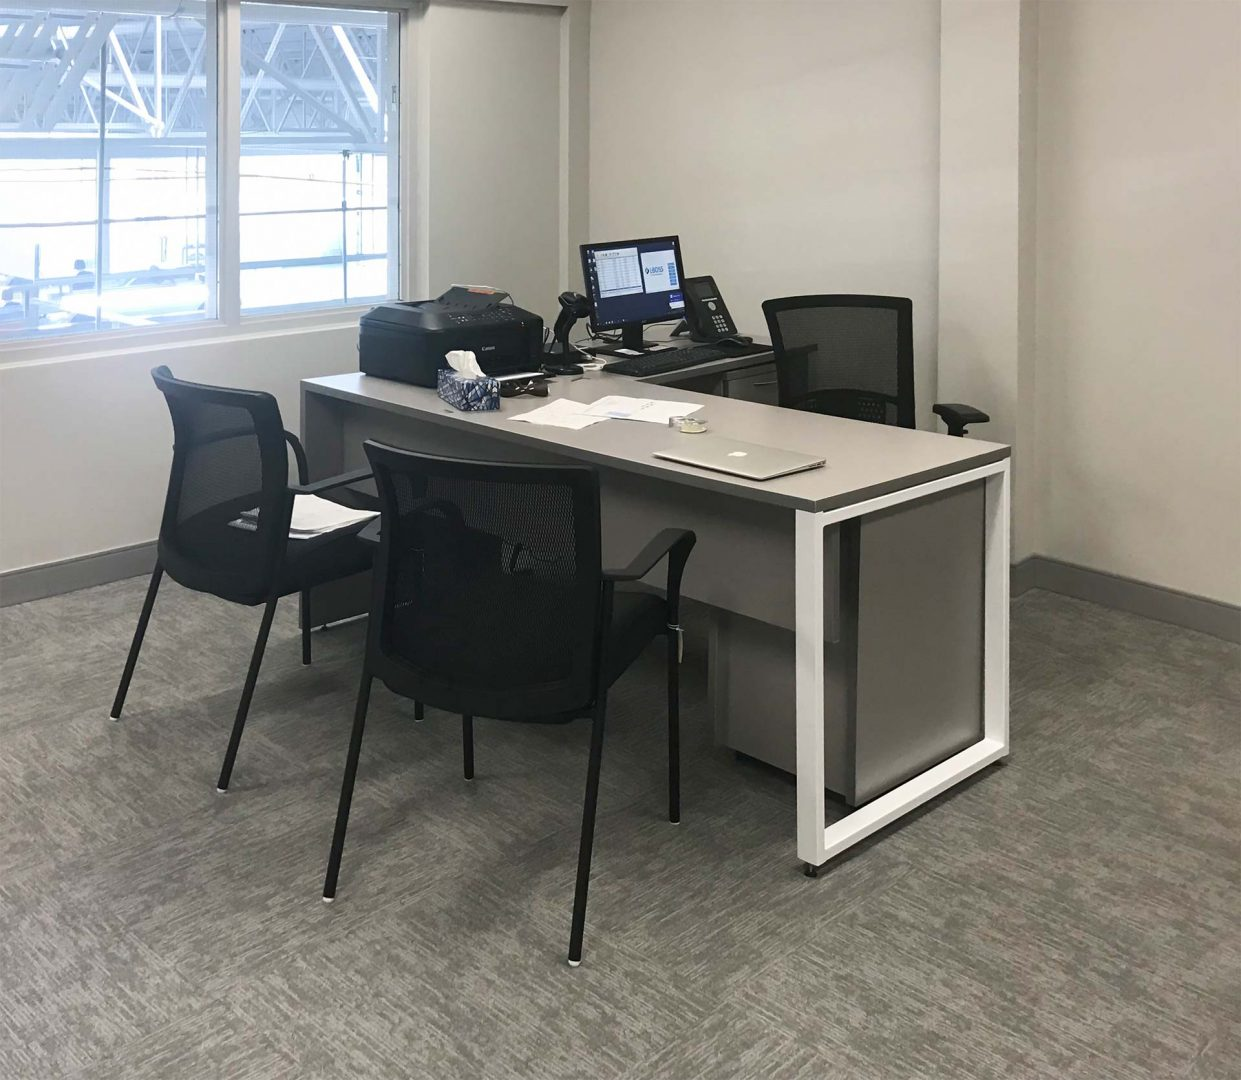 O-Leg Desk with Mixed Storage, Office Chair, Visitor Chair